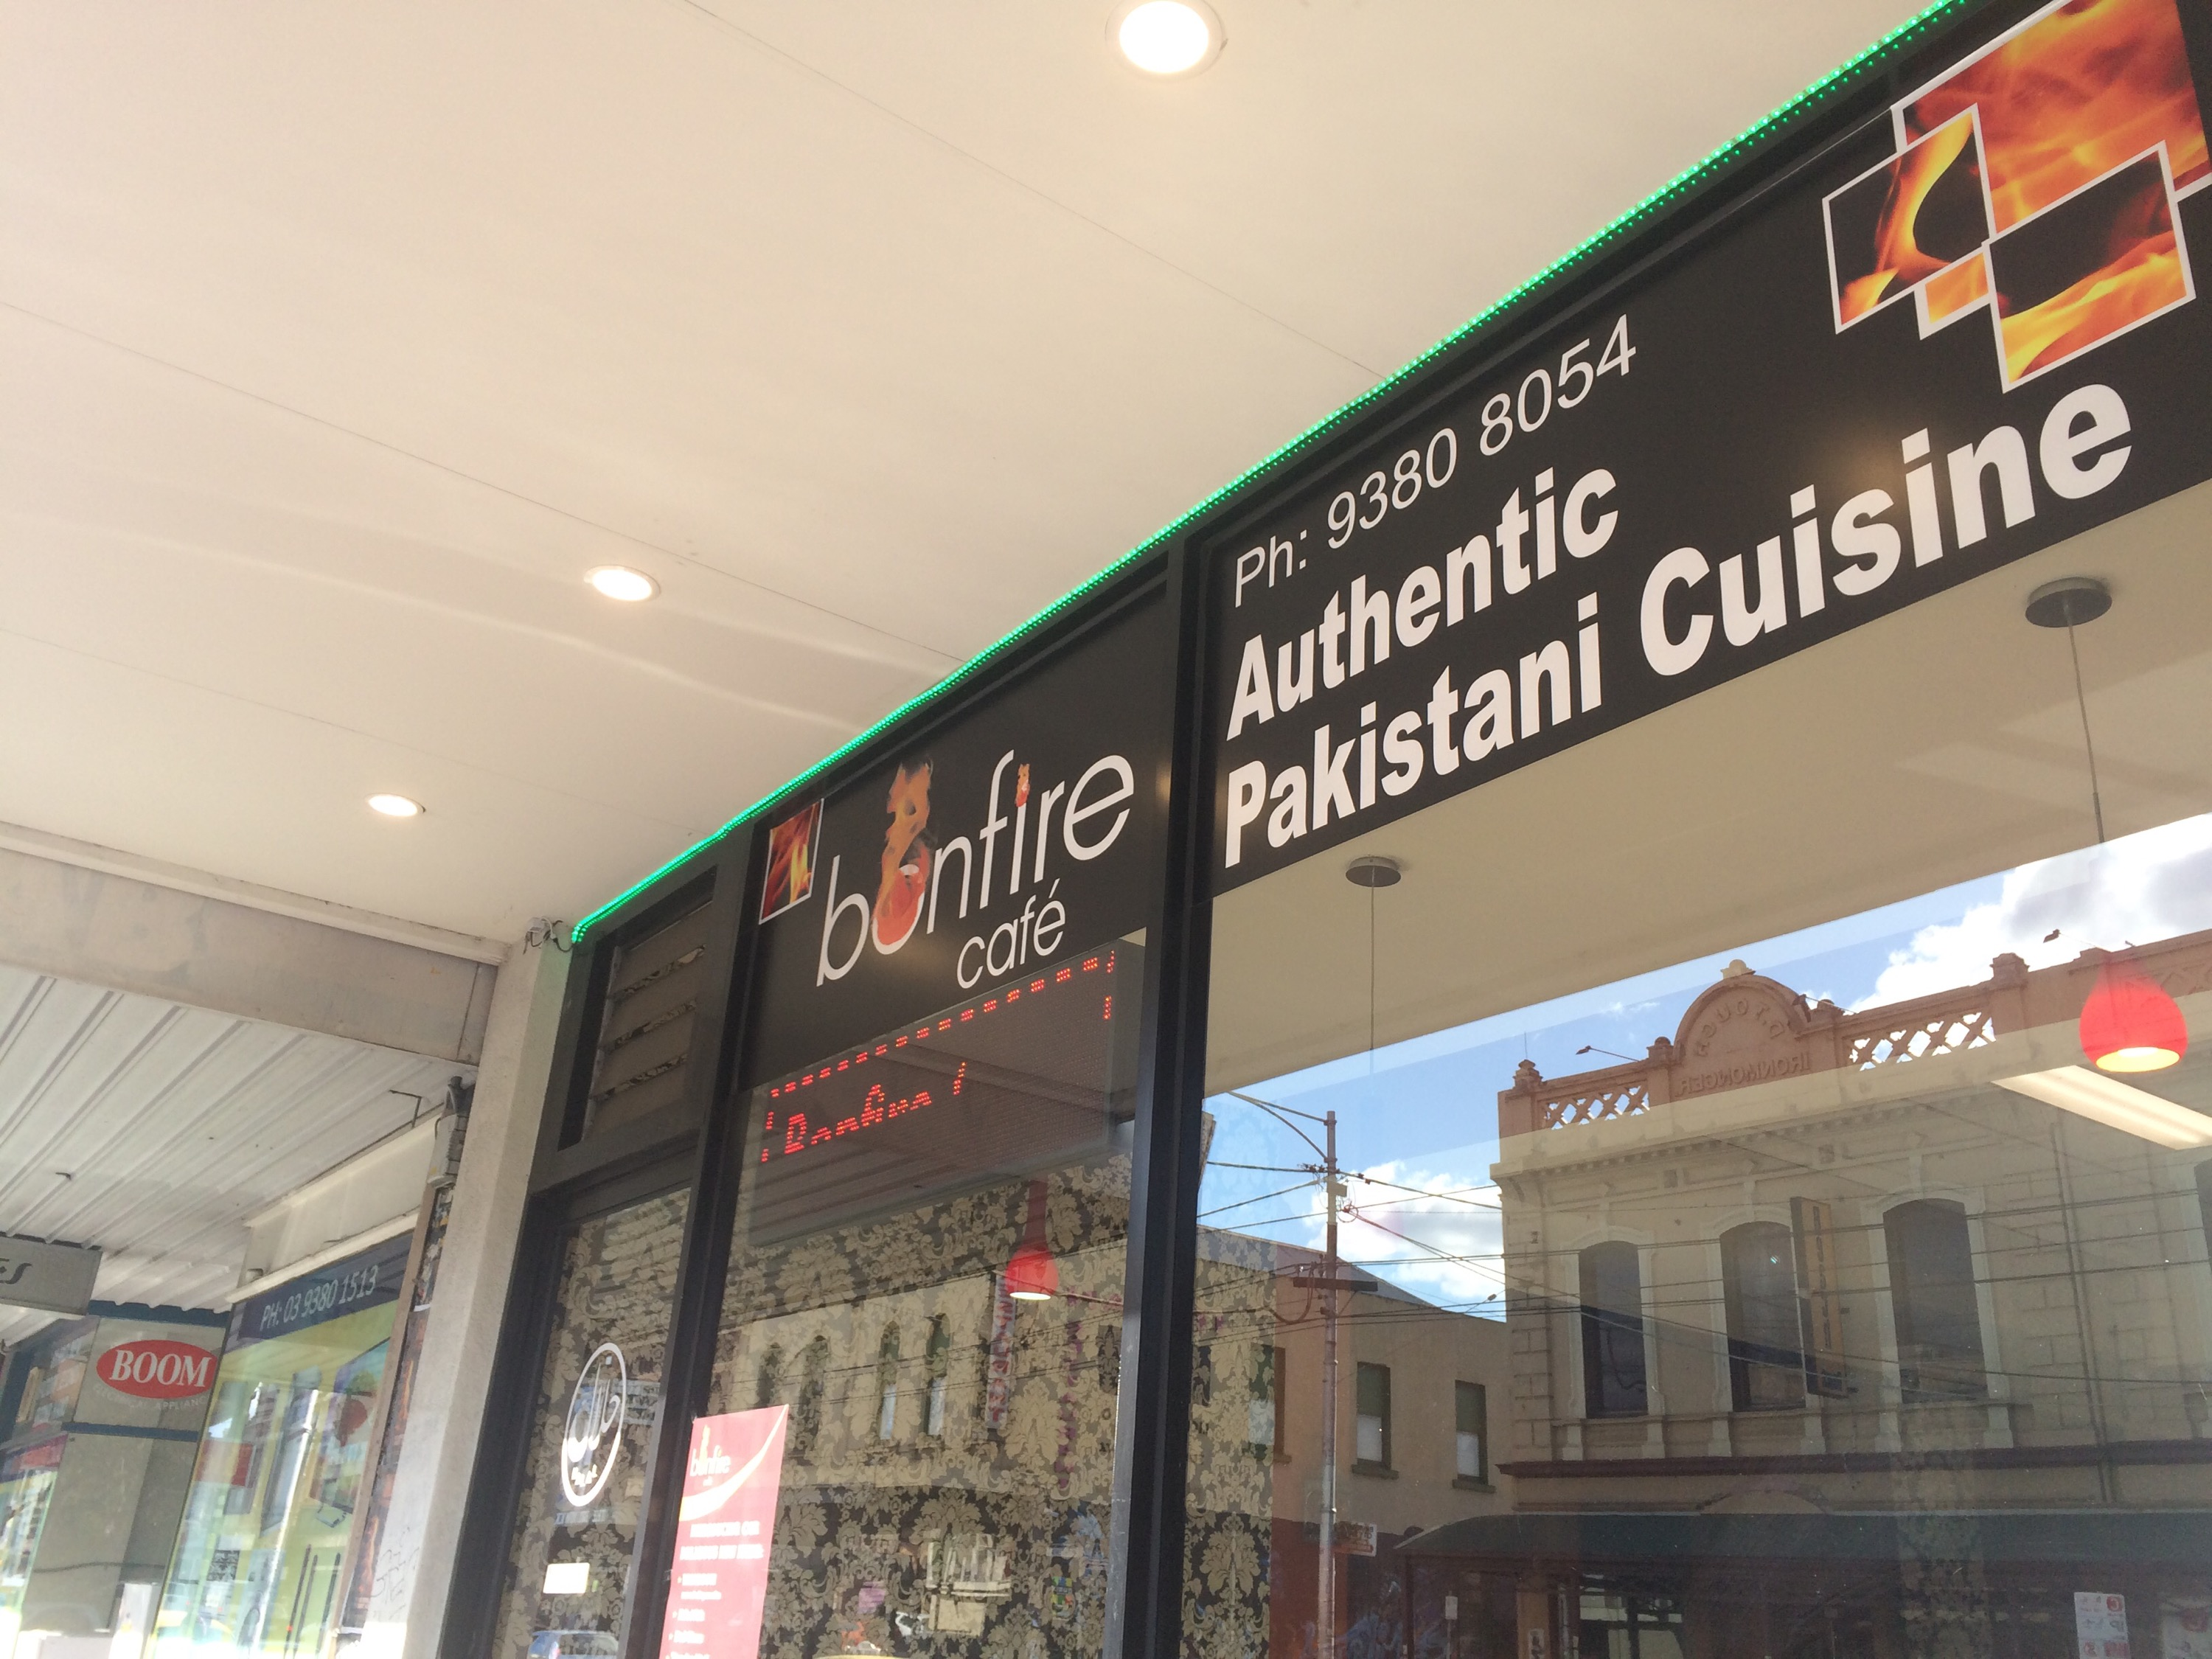 A view of the Bonfire Pakistani restaurant from outside on the Sydney Road, Melbourne - Victoria.